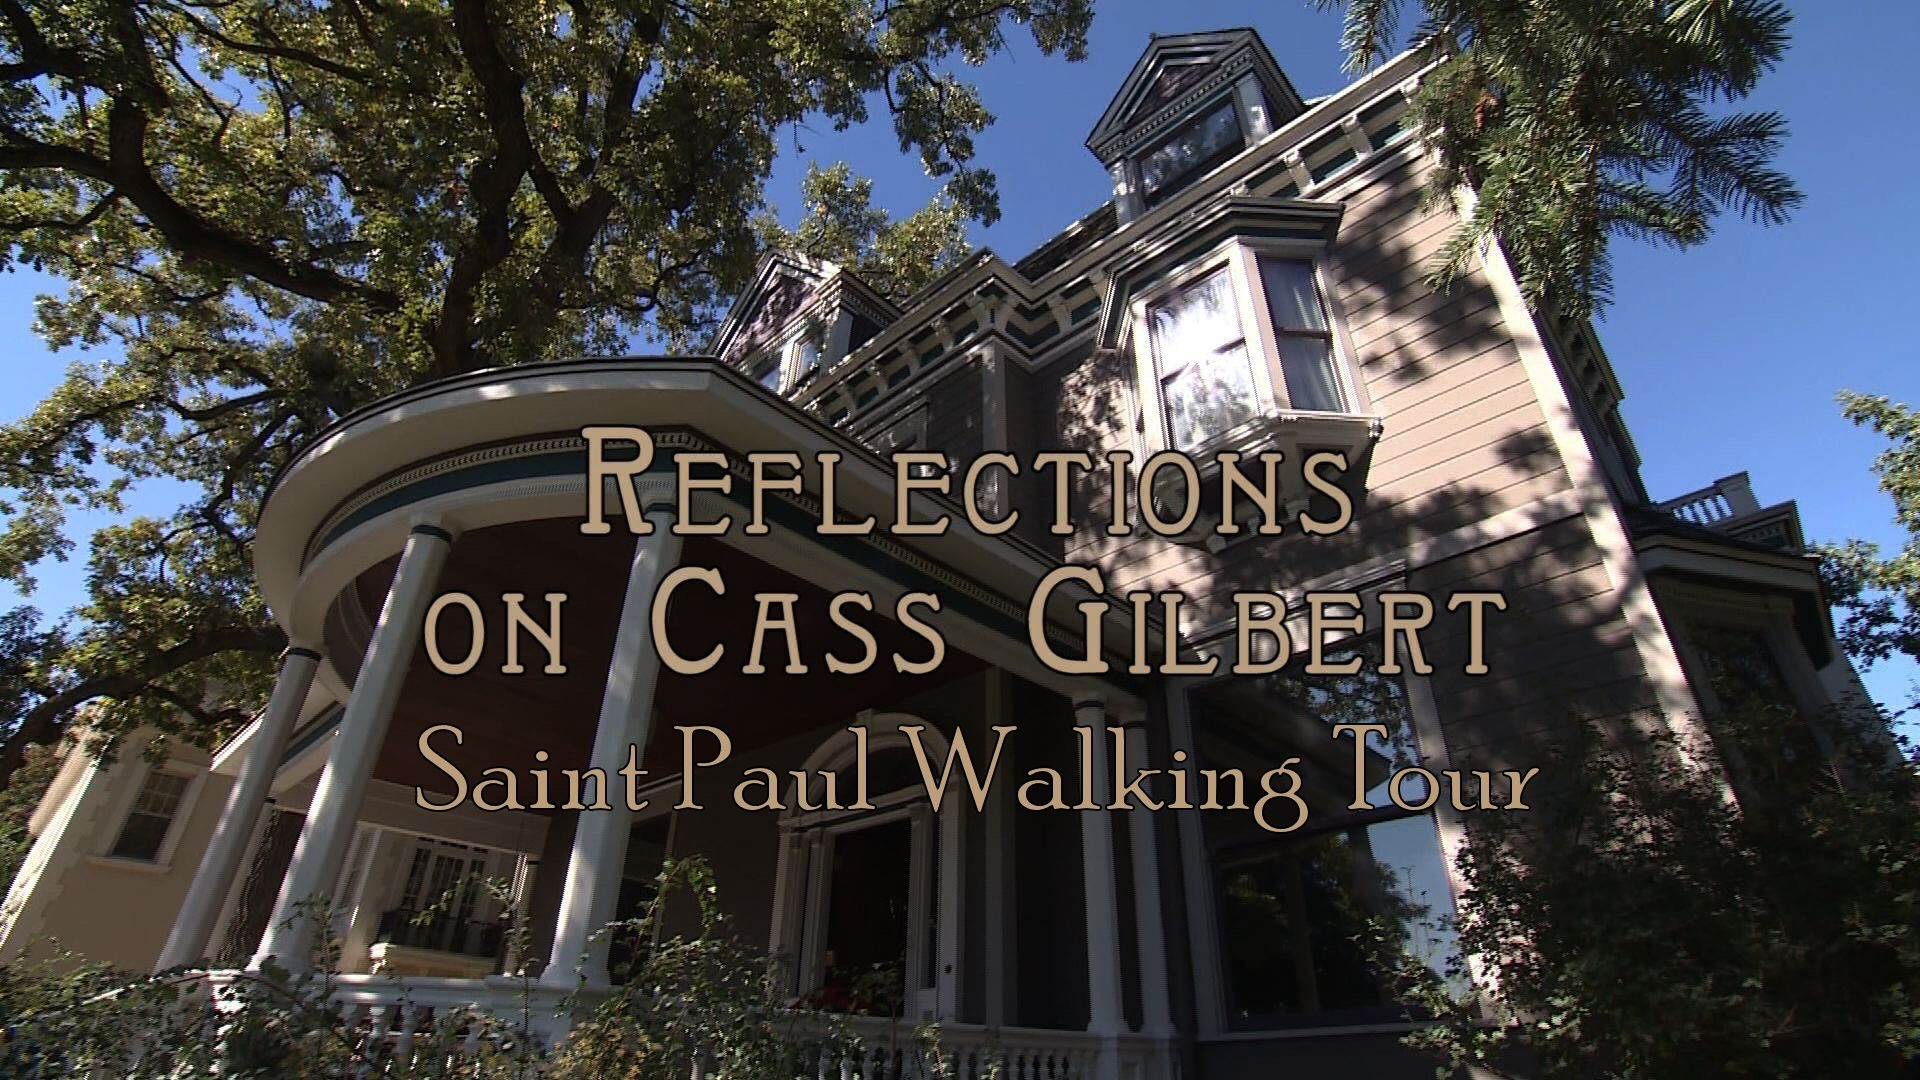 Cass Gilbert Walking Tour